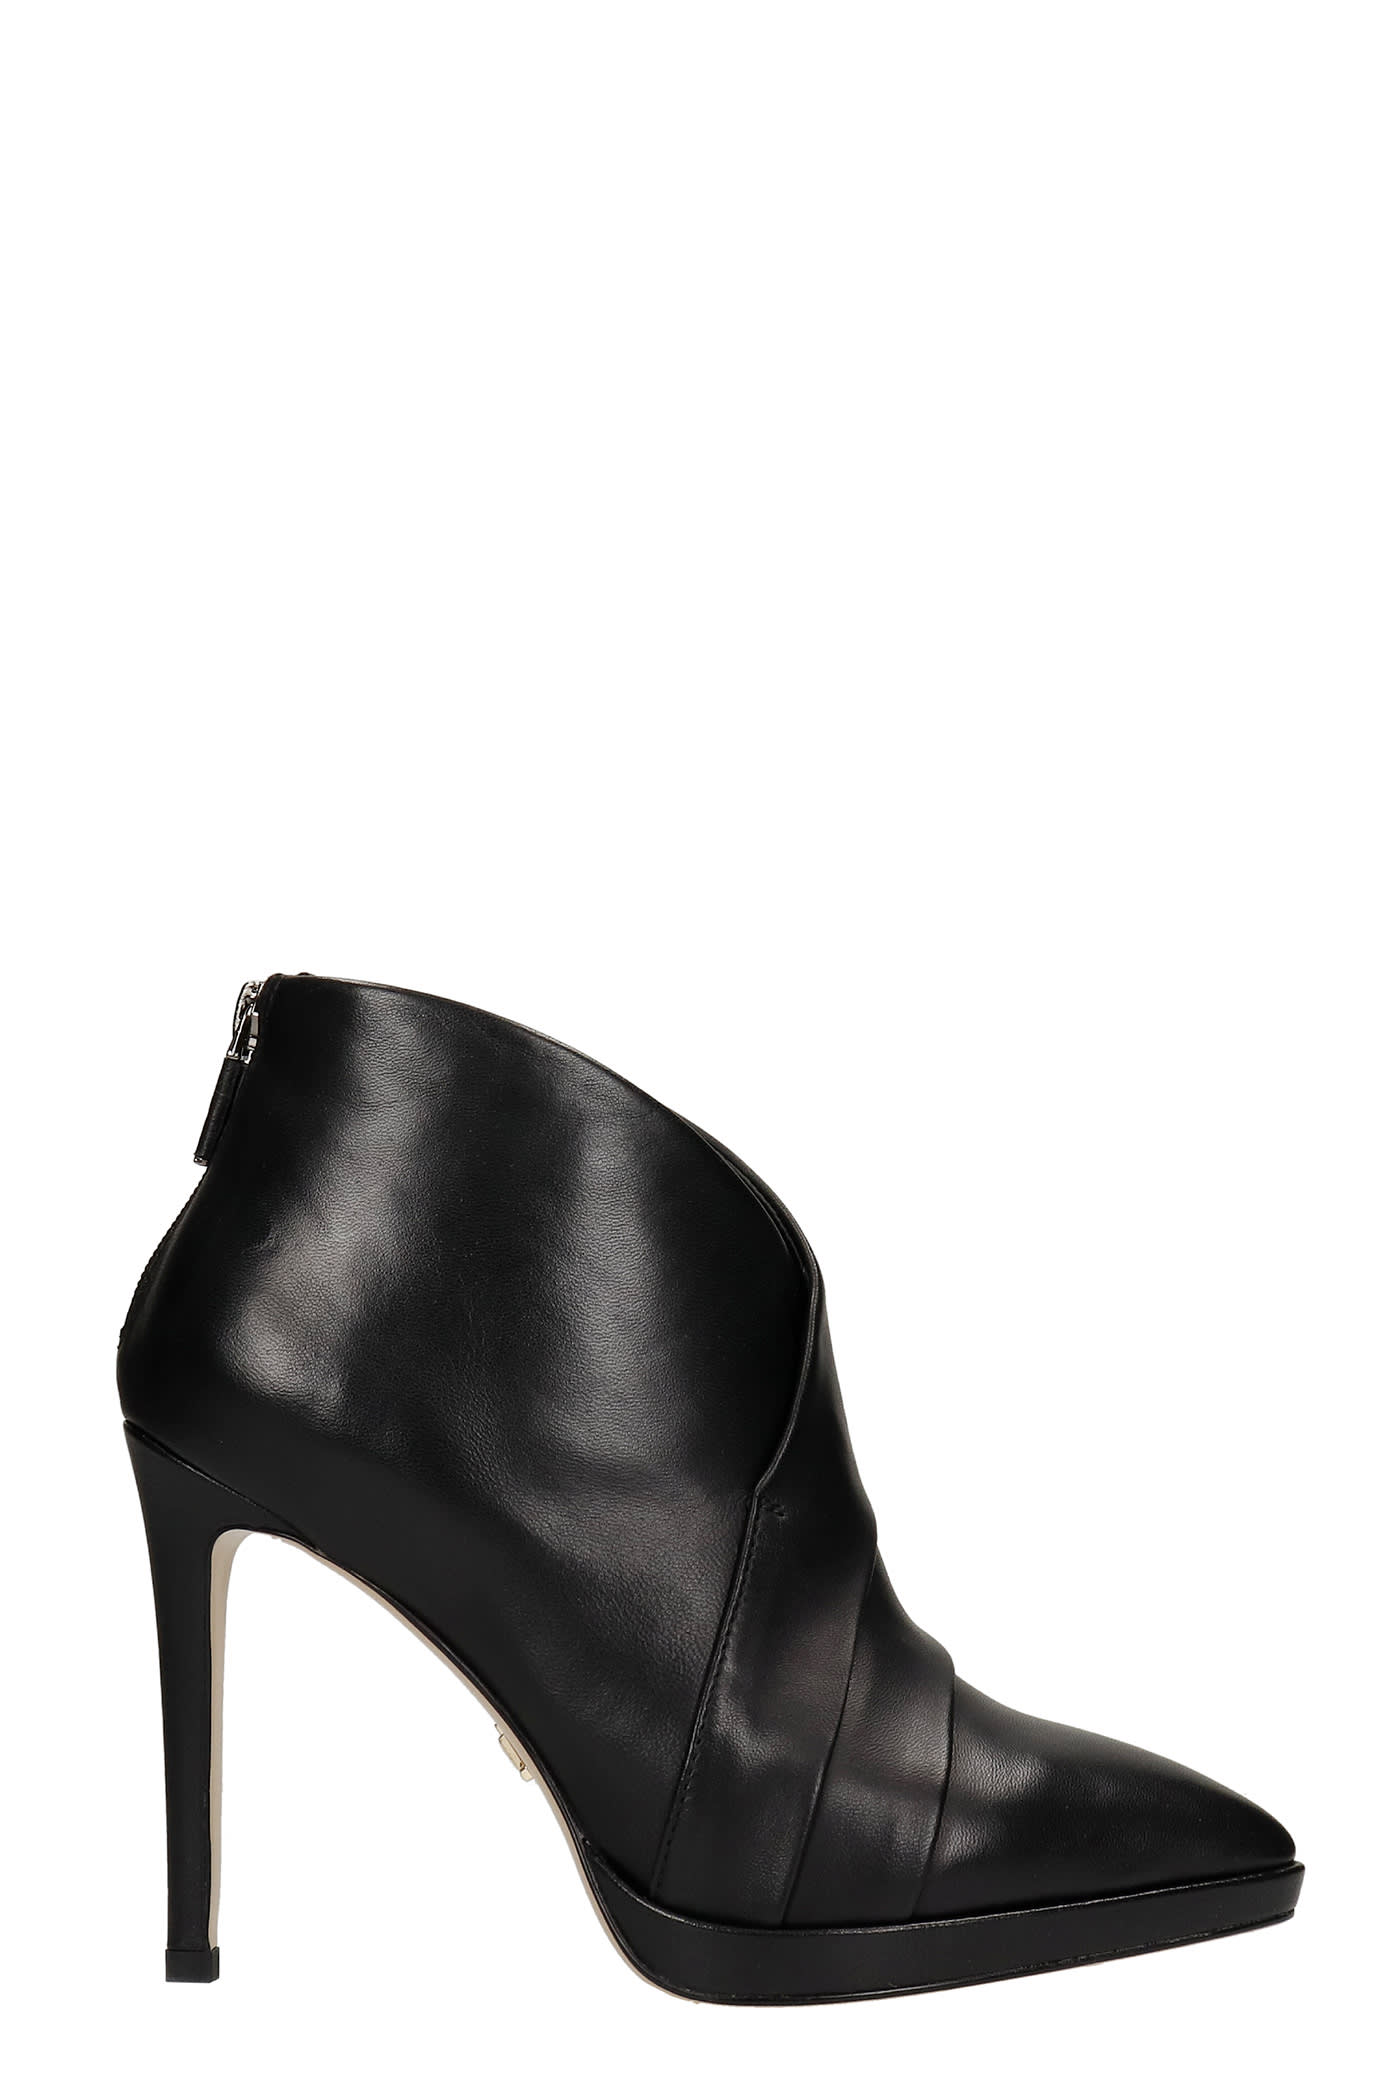 High Heels Ankle Boots In Black Leather